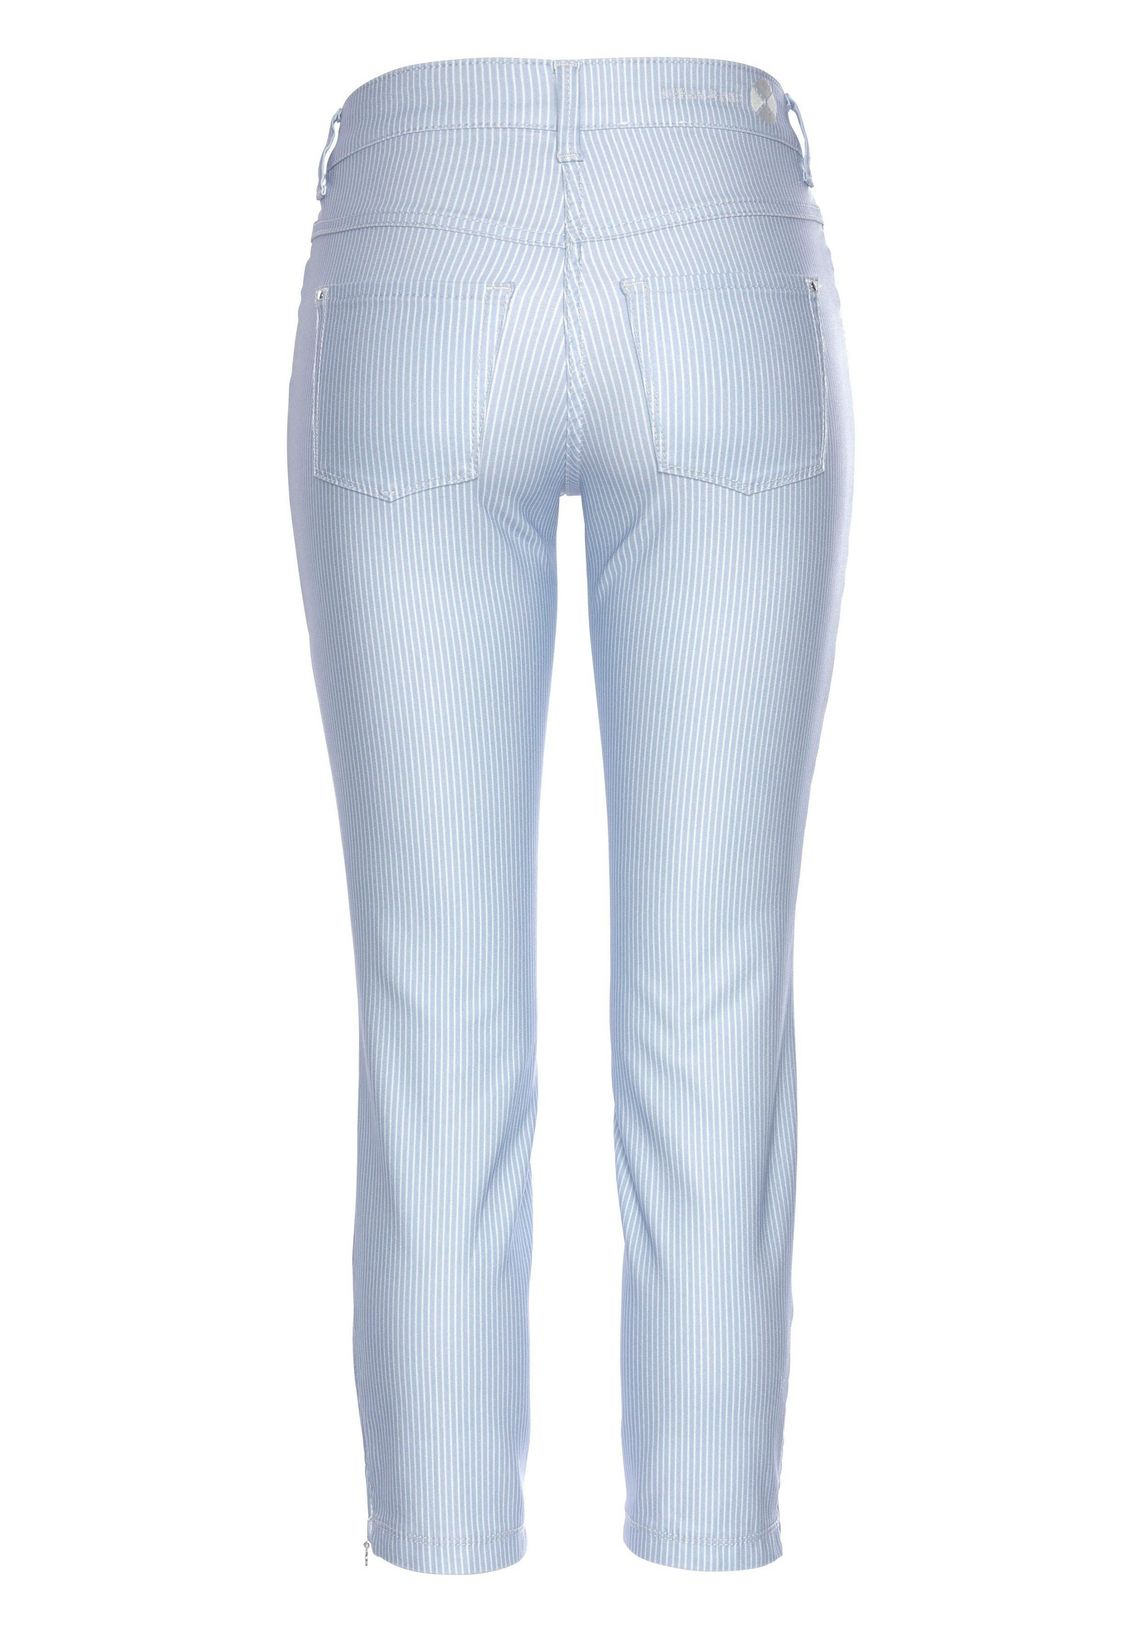 Mac Ankle Jeans Dream Chic Glam Pocket Online Bij Light-blue/white 3PLEzVyD